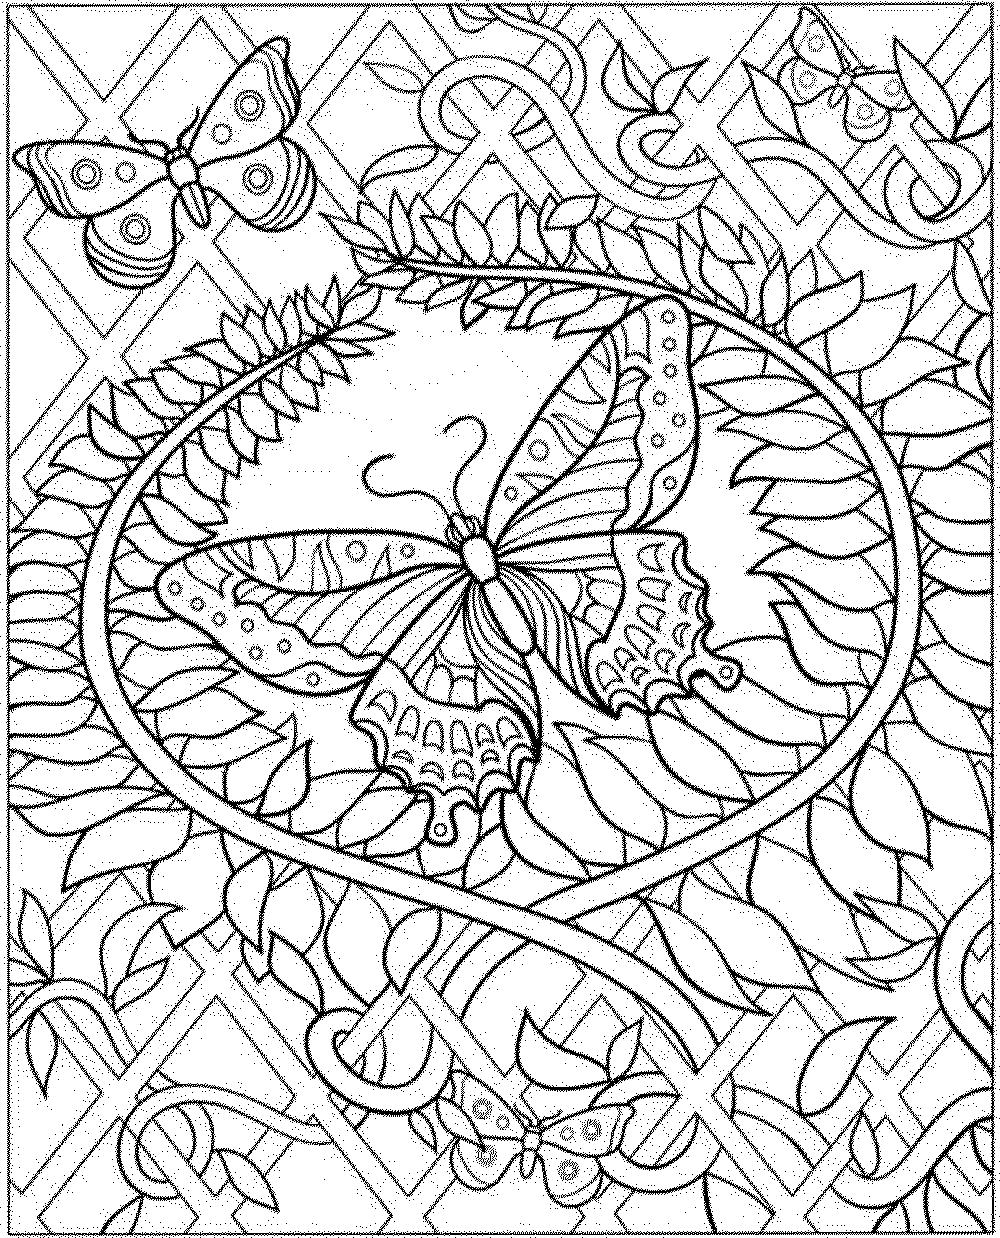 inappropriate coloring pages for adults - detailed coloring pages for adults inappropriate sketch templates